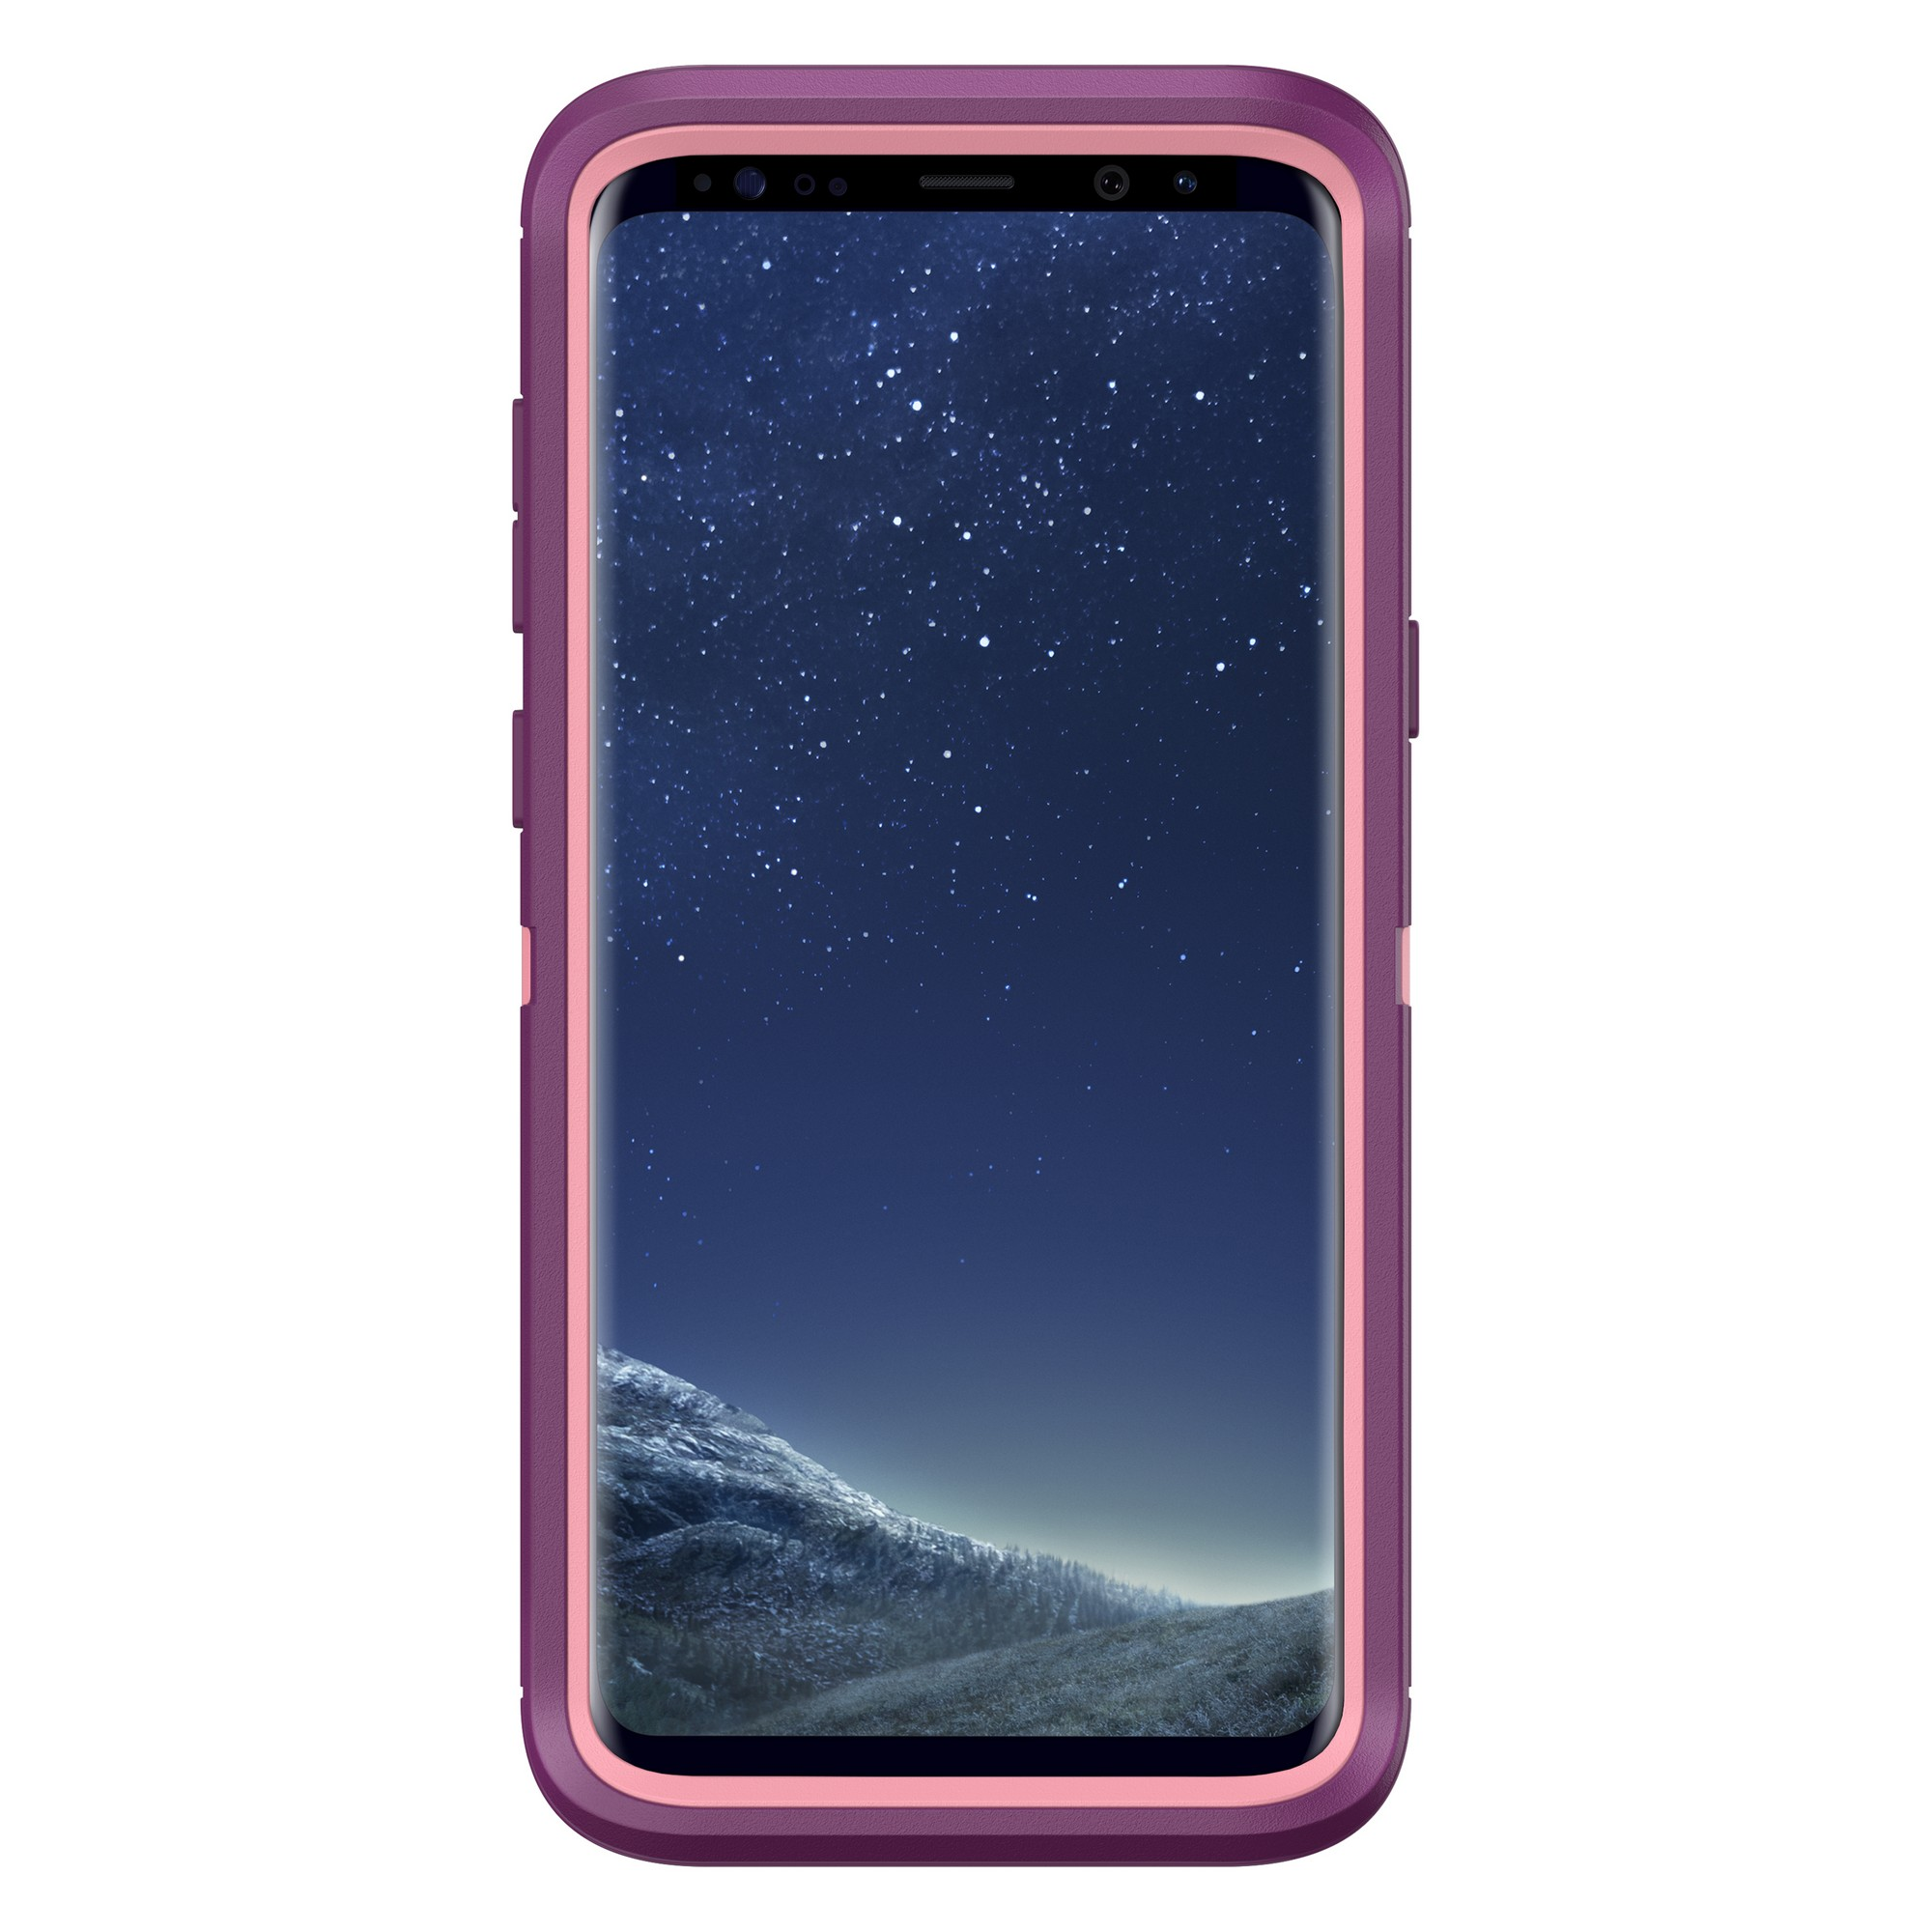 classic fit a6fa5 1055c Otterbox Samsung Galaxy S8 Plus Dark Pink/Purple (Vinyasa) Defender series  case - 77-54584